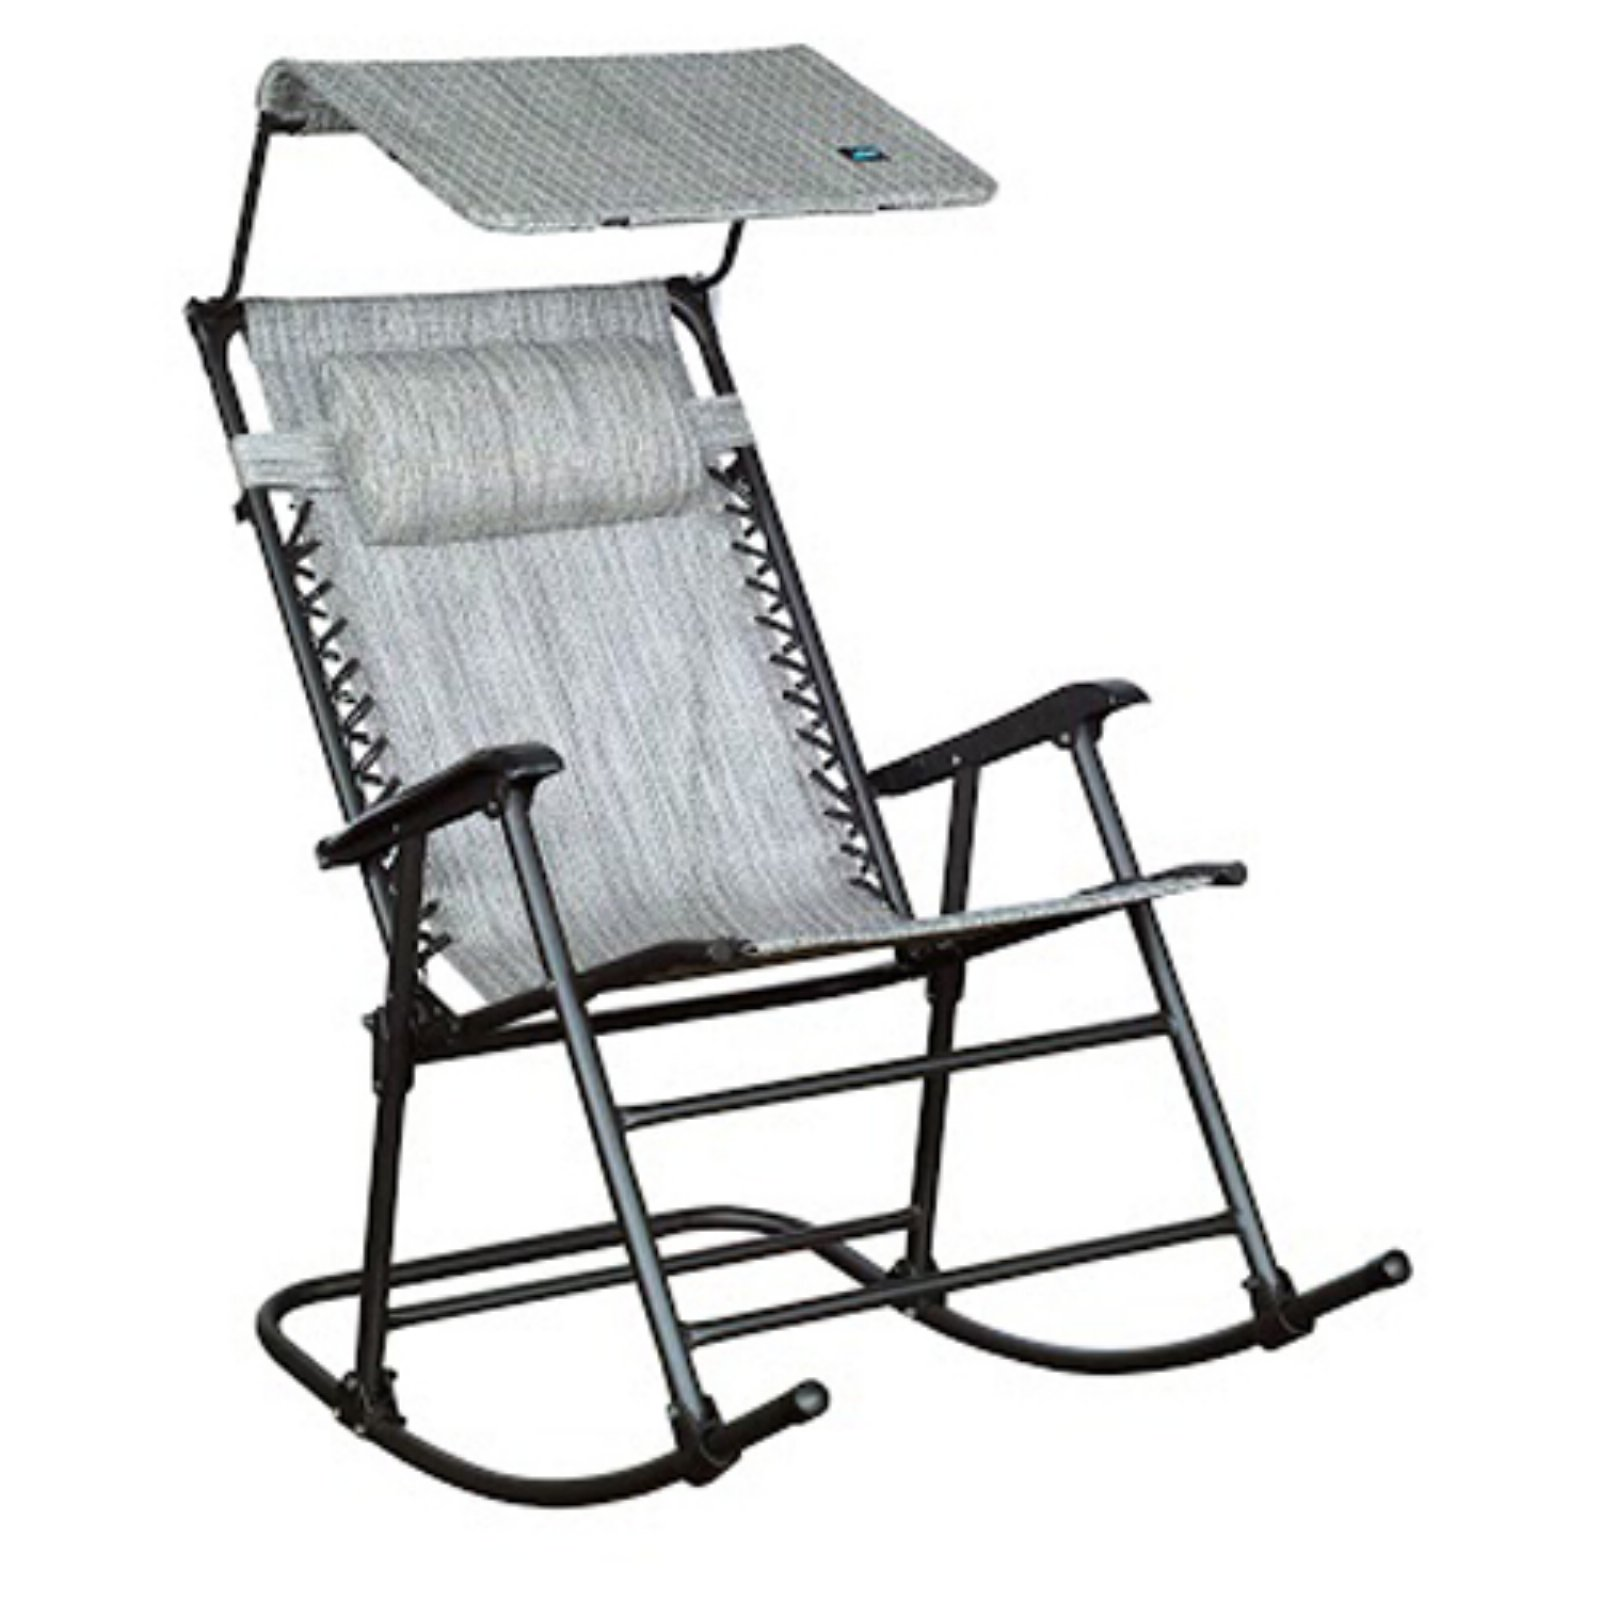 Bliss Hammocks Rocking Chair with Canopy Walmart